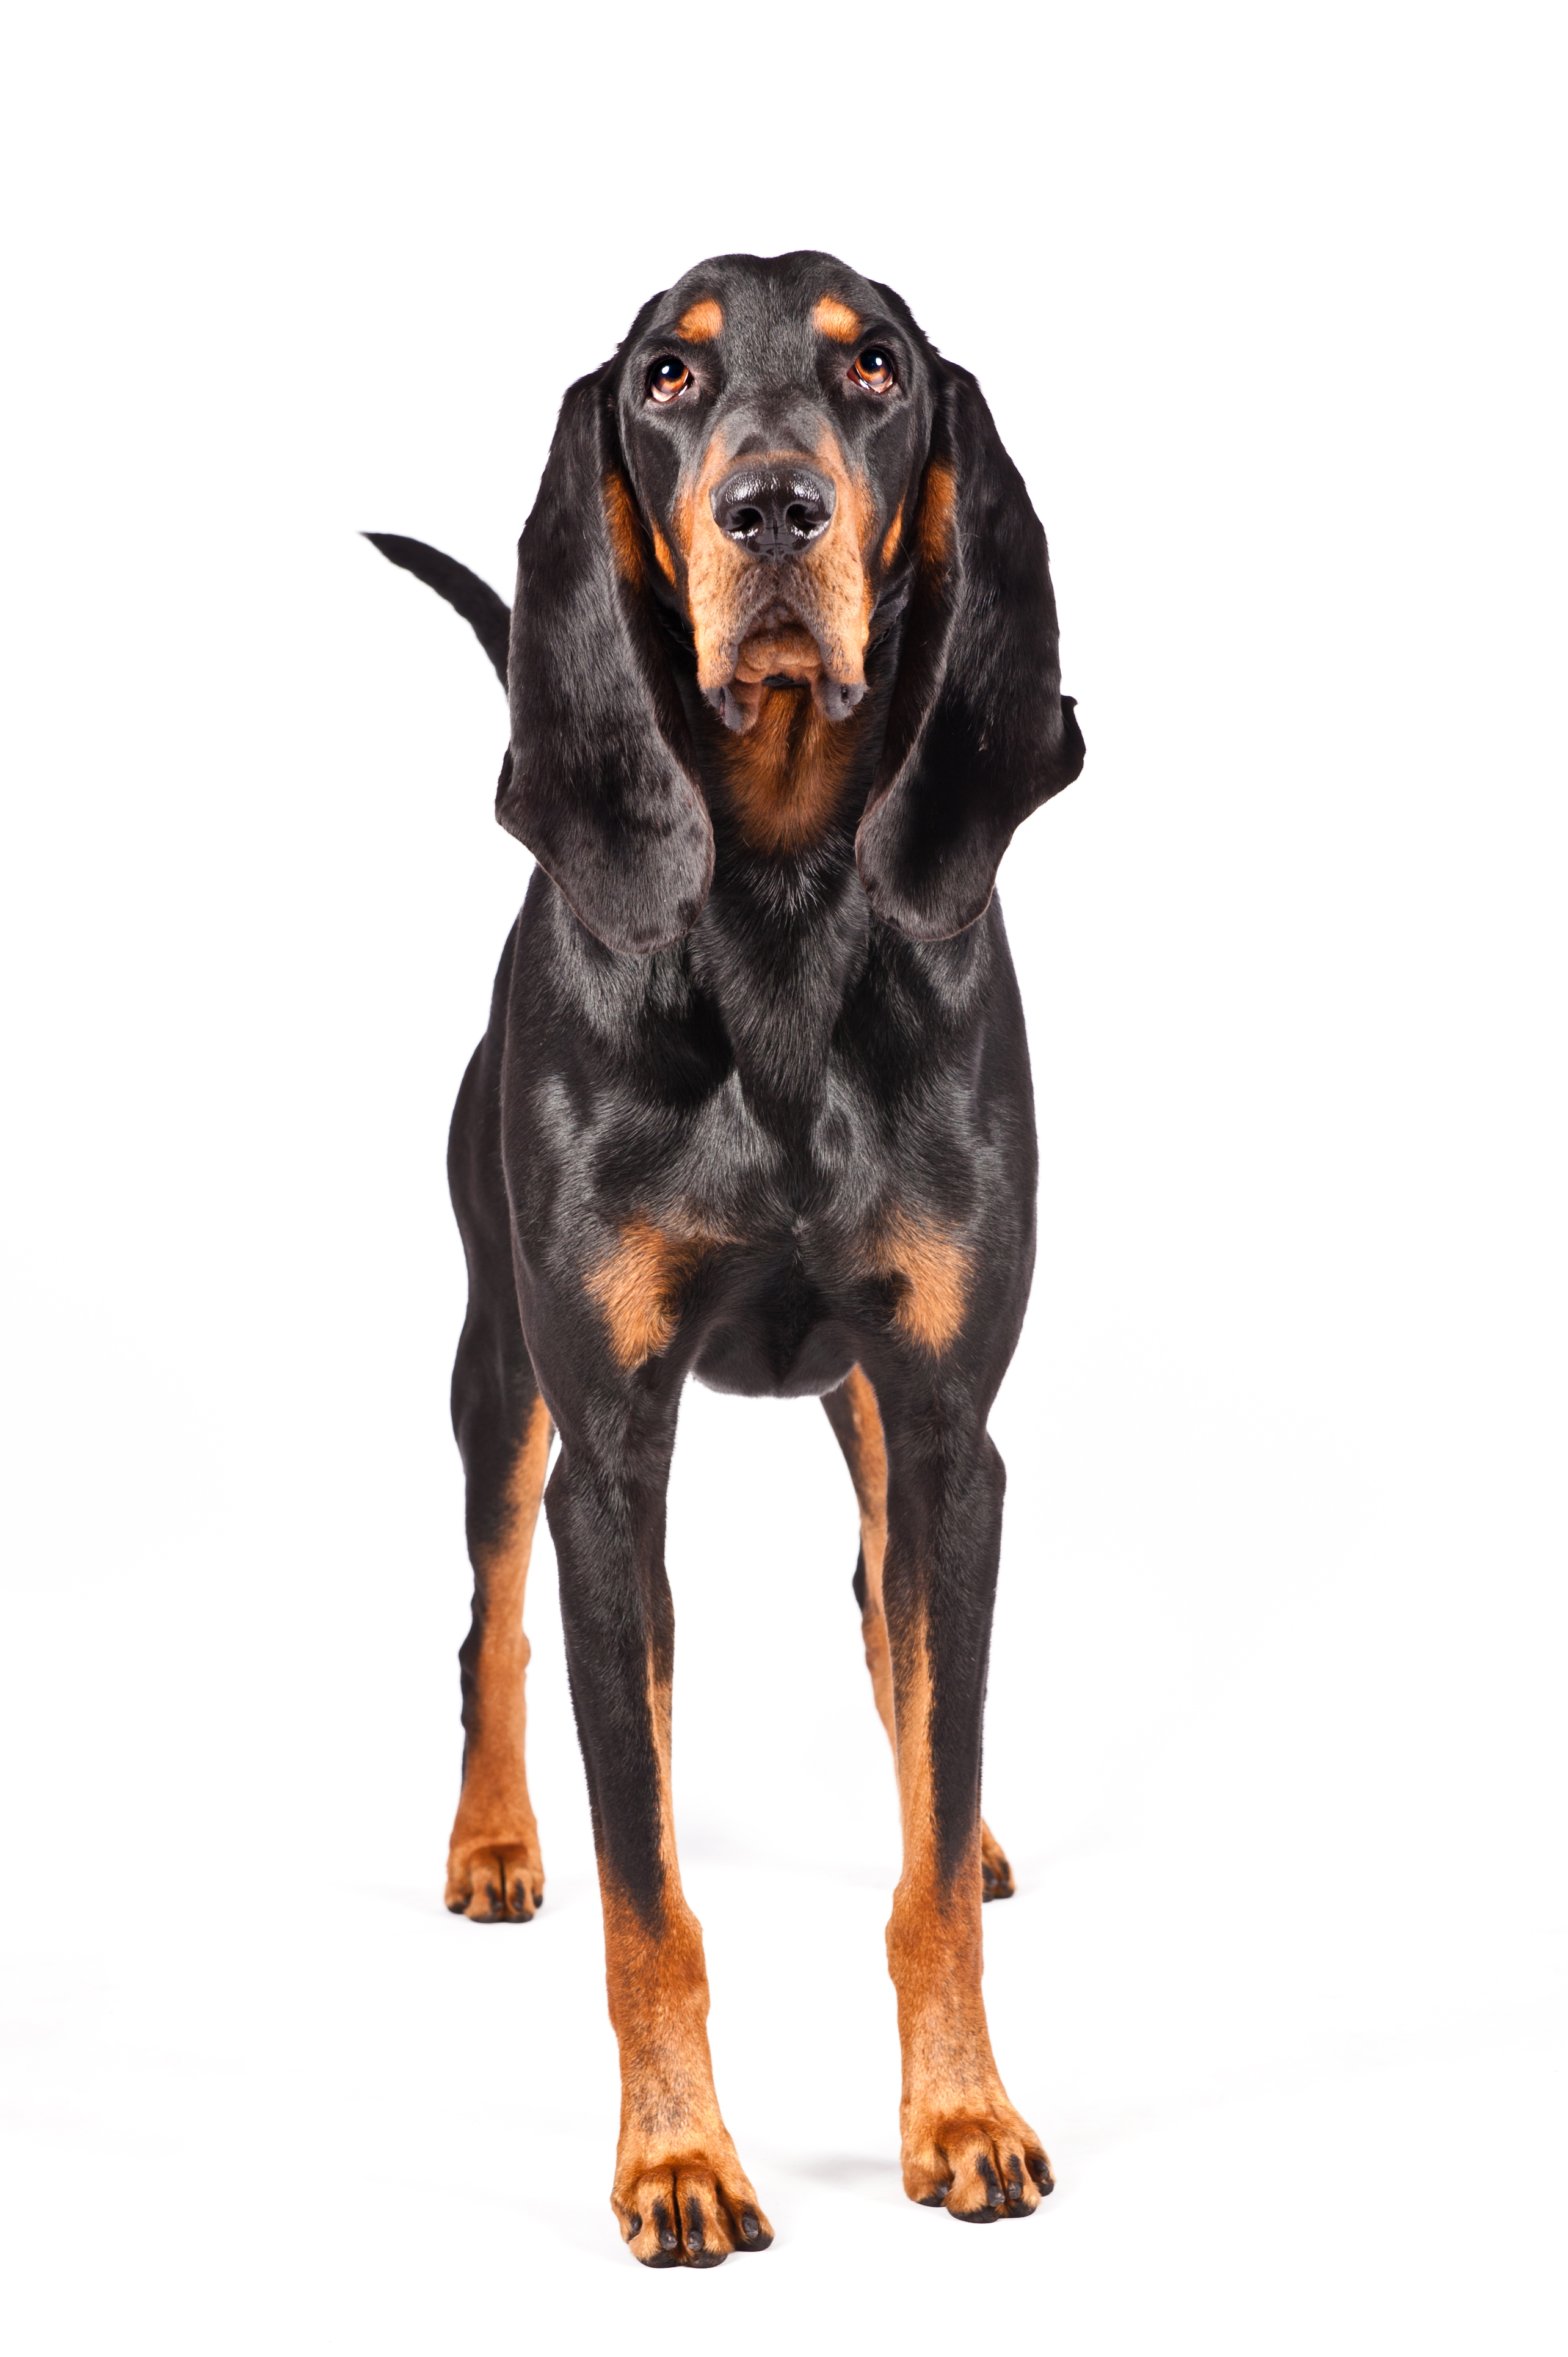 Dog of the Day  Black and Tan Coonhound  Hot Dog Pet Photography